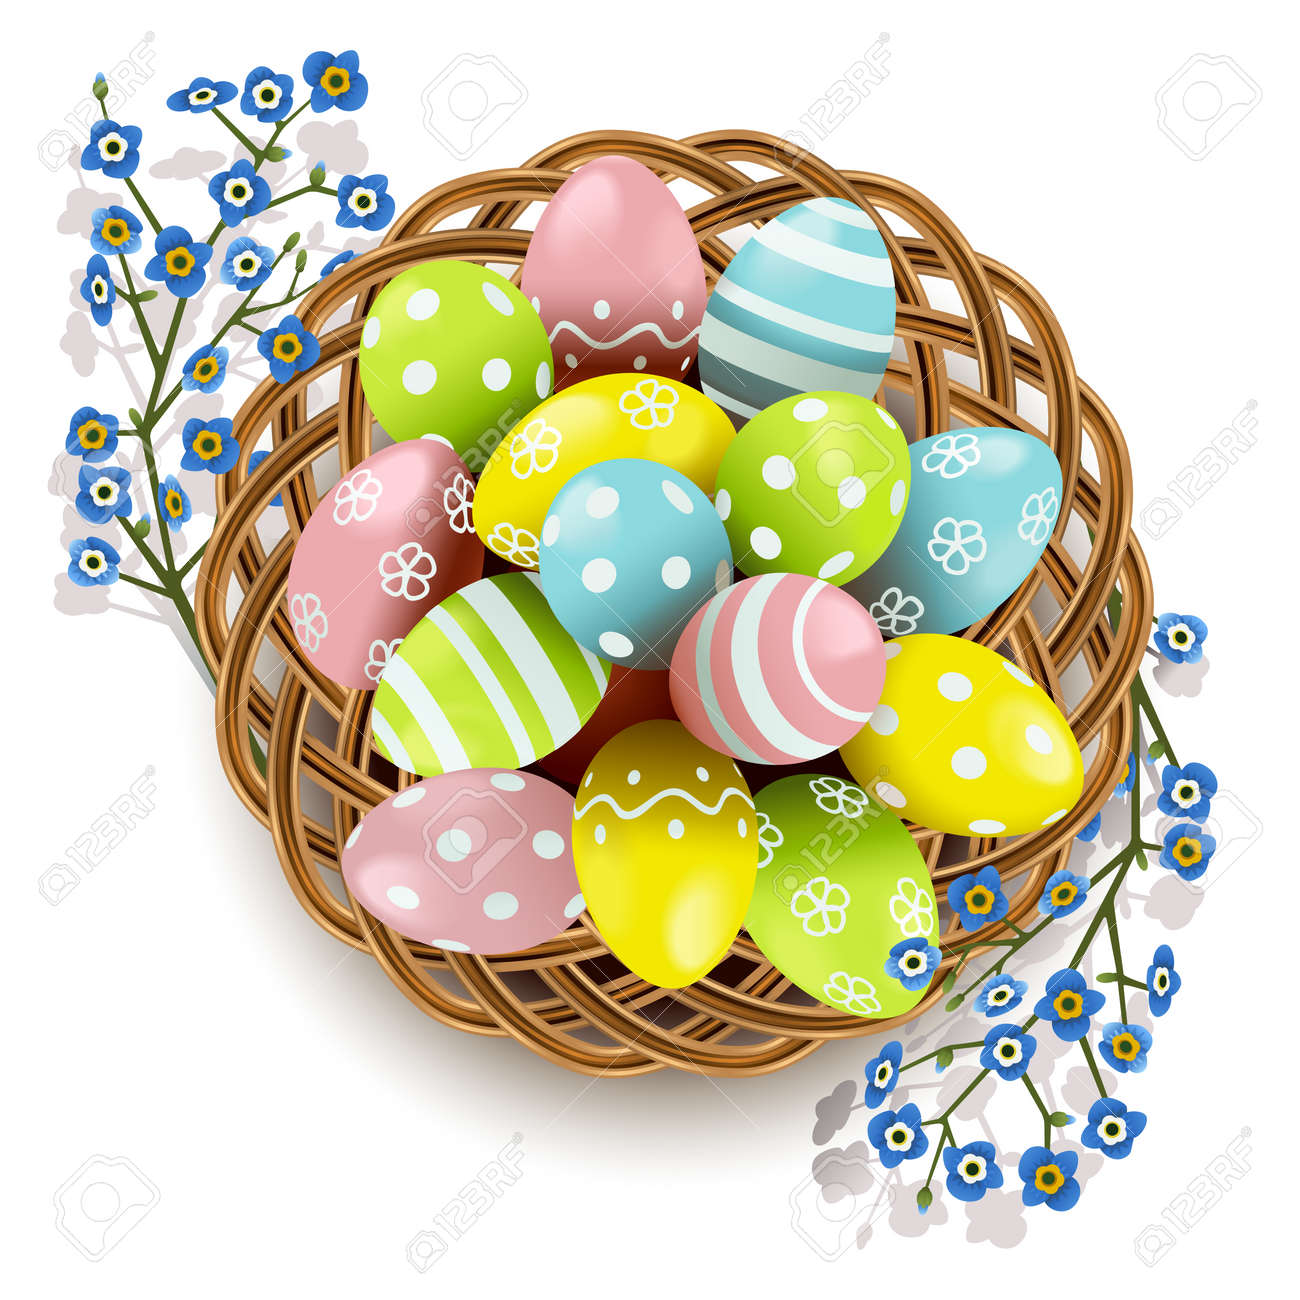 Vector Easter Eggs with Wicker Dish isolated on white background - 163516316